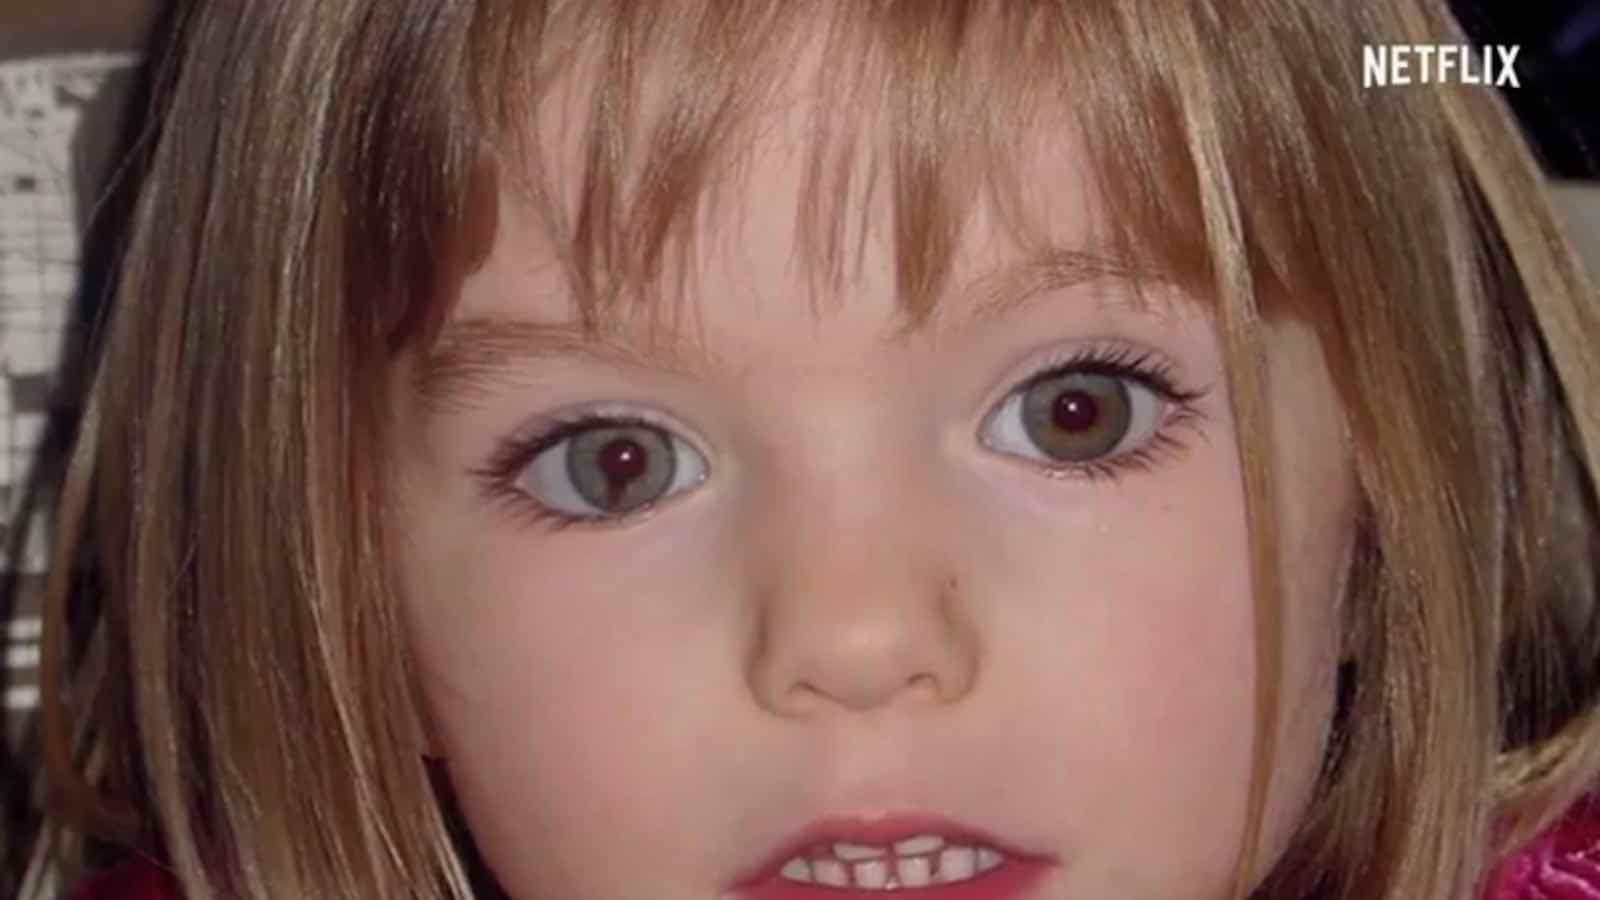 Film Daily 'Netflix' critique: 'The Disappearance of Madeleine McCann': Saddest true crime ever? The-Disappearance-of-Madeleine-McCann-2